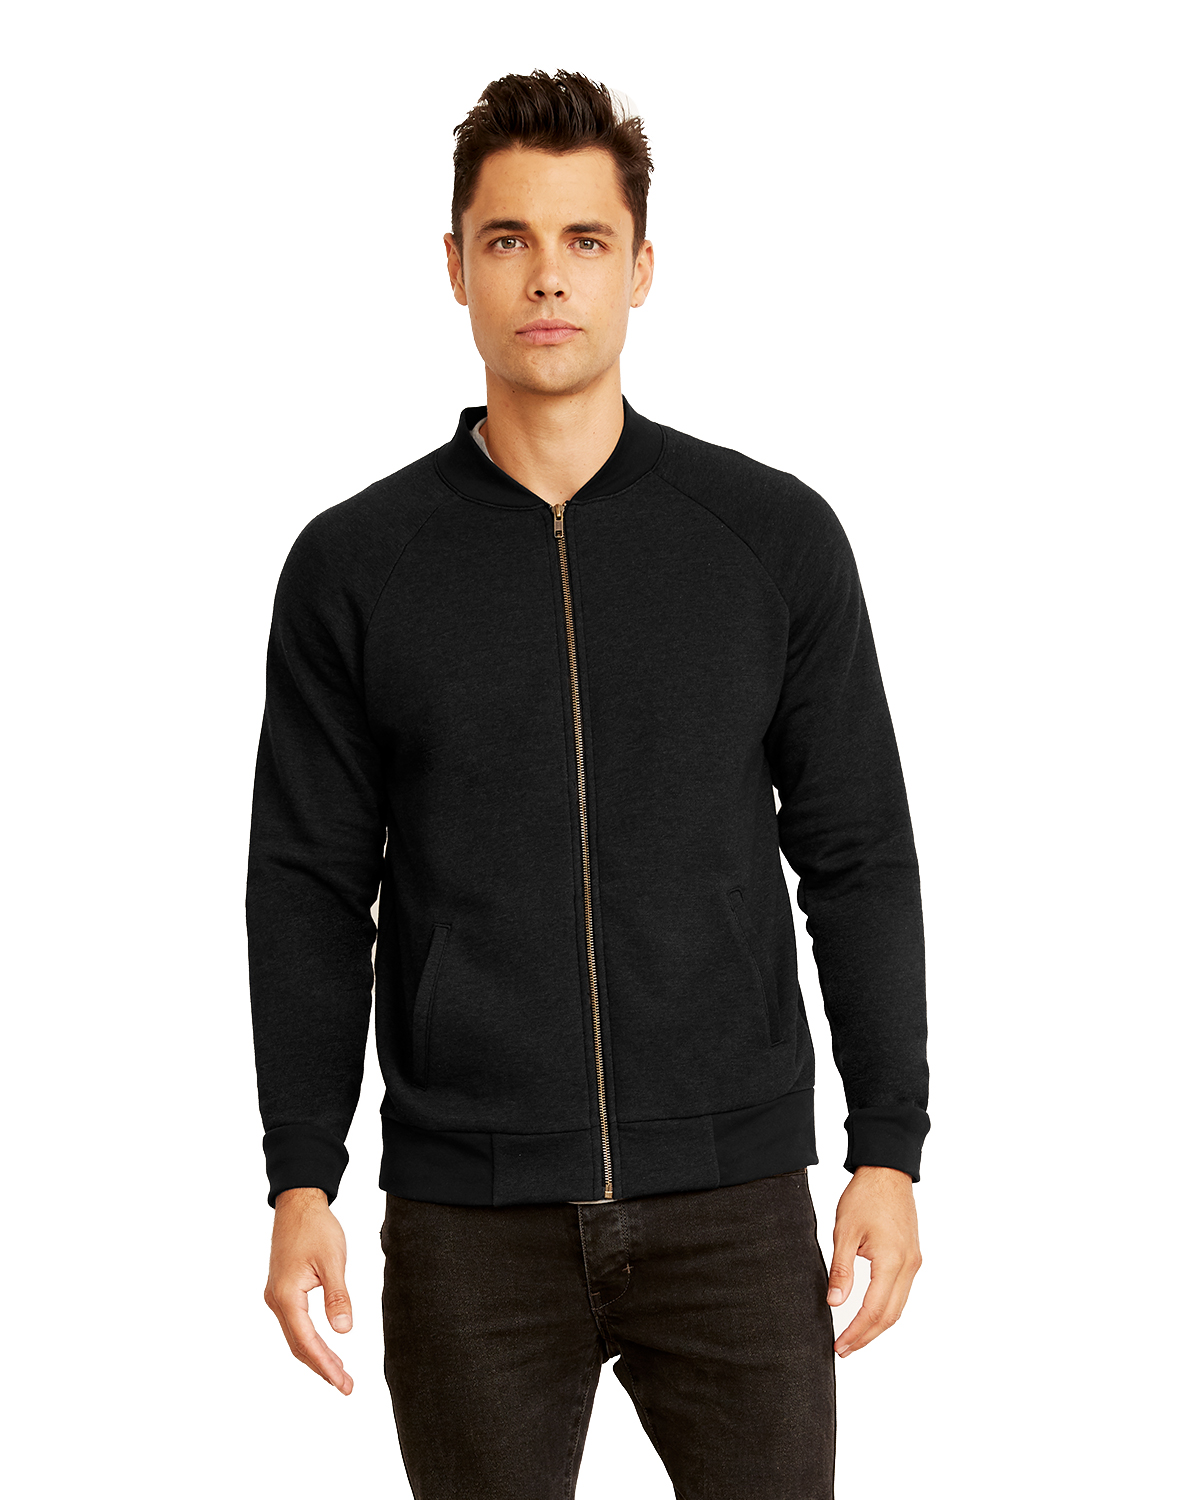 Next Level Apparel 9700 - Unisex PCH Bomber Jacket